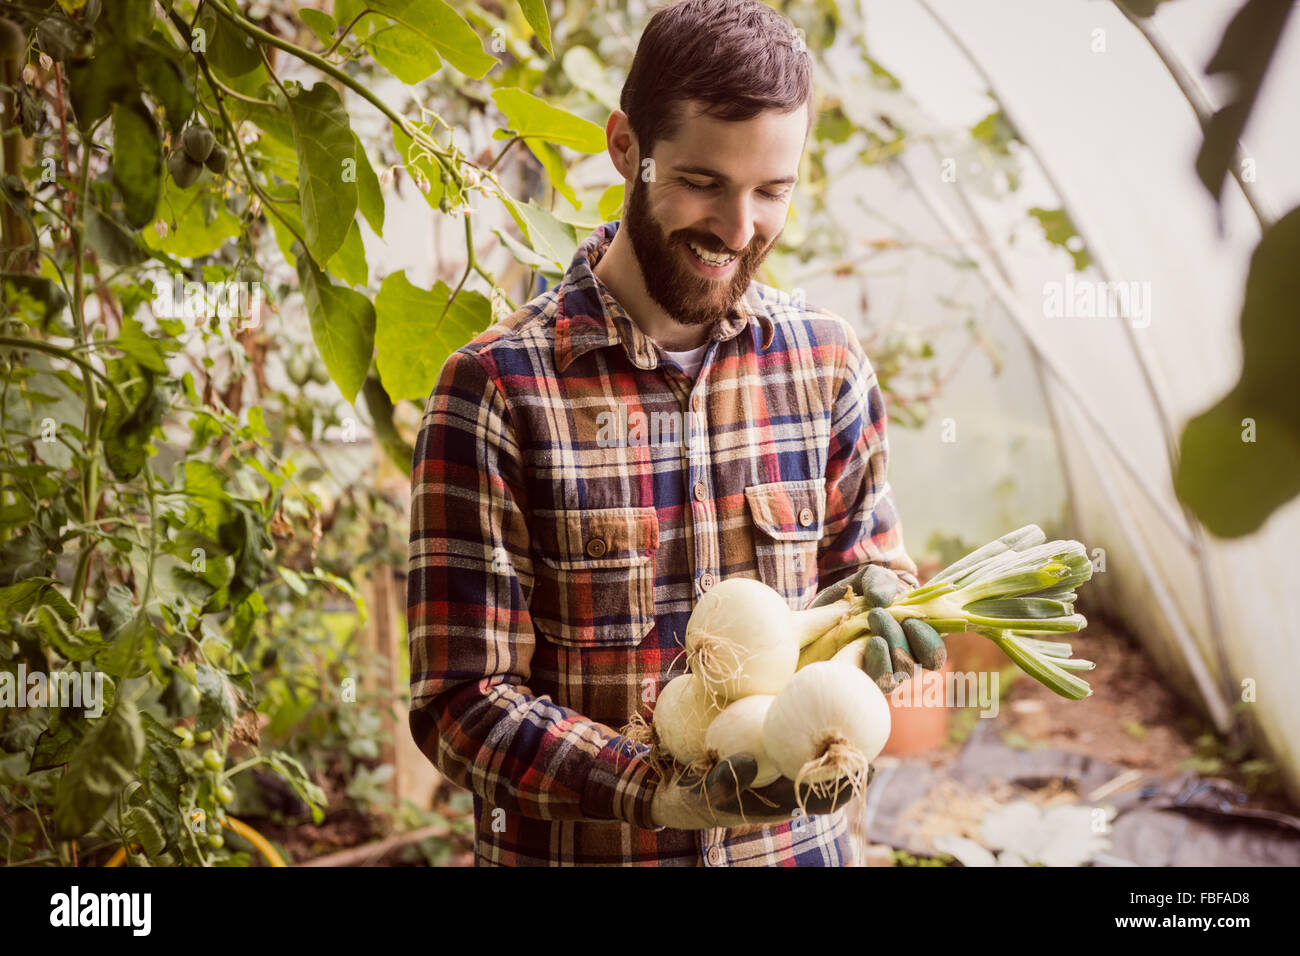 Smiling man looking at bulb - Stock Image